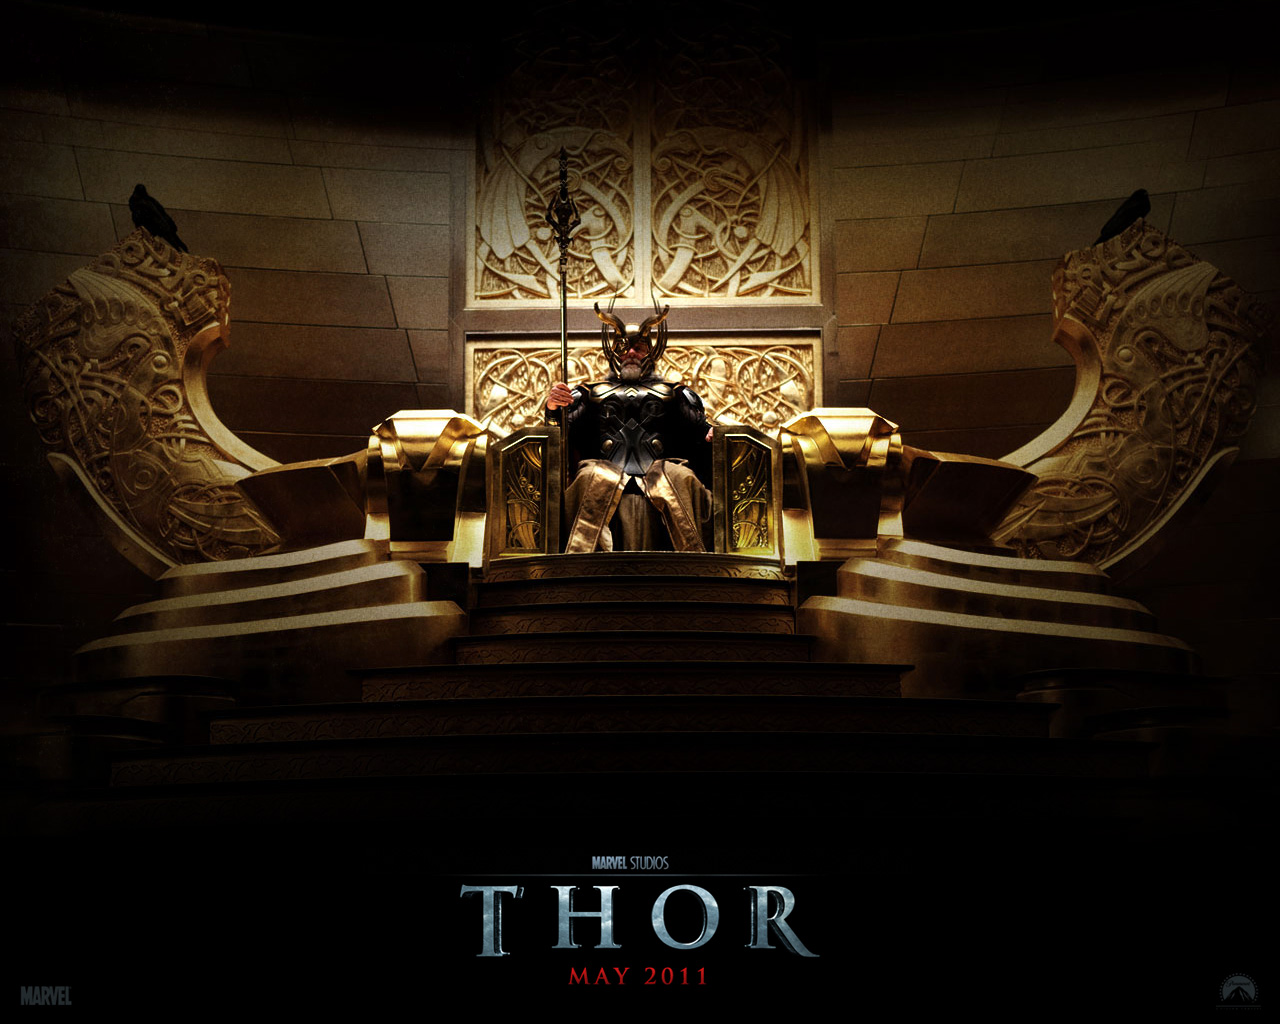 Fantastic Wallpaper Marvel Odin - latest?cb\u003d20120318174004  Image_842690.jpg/revision/latest?cb\u003d20120318174004